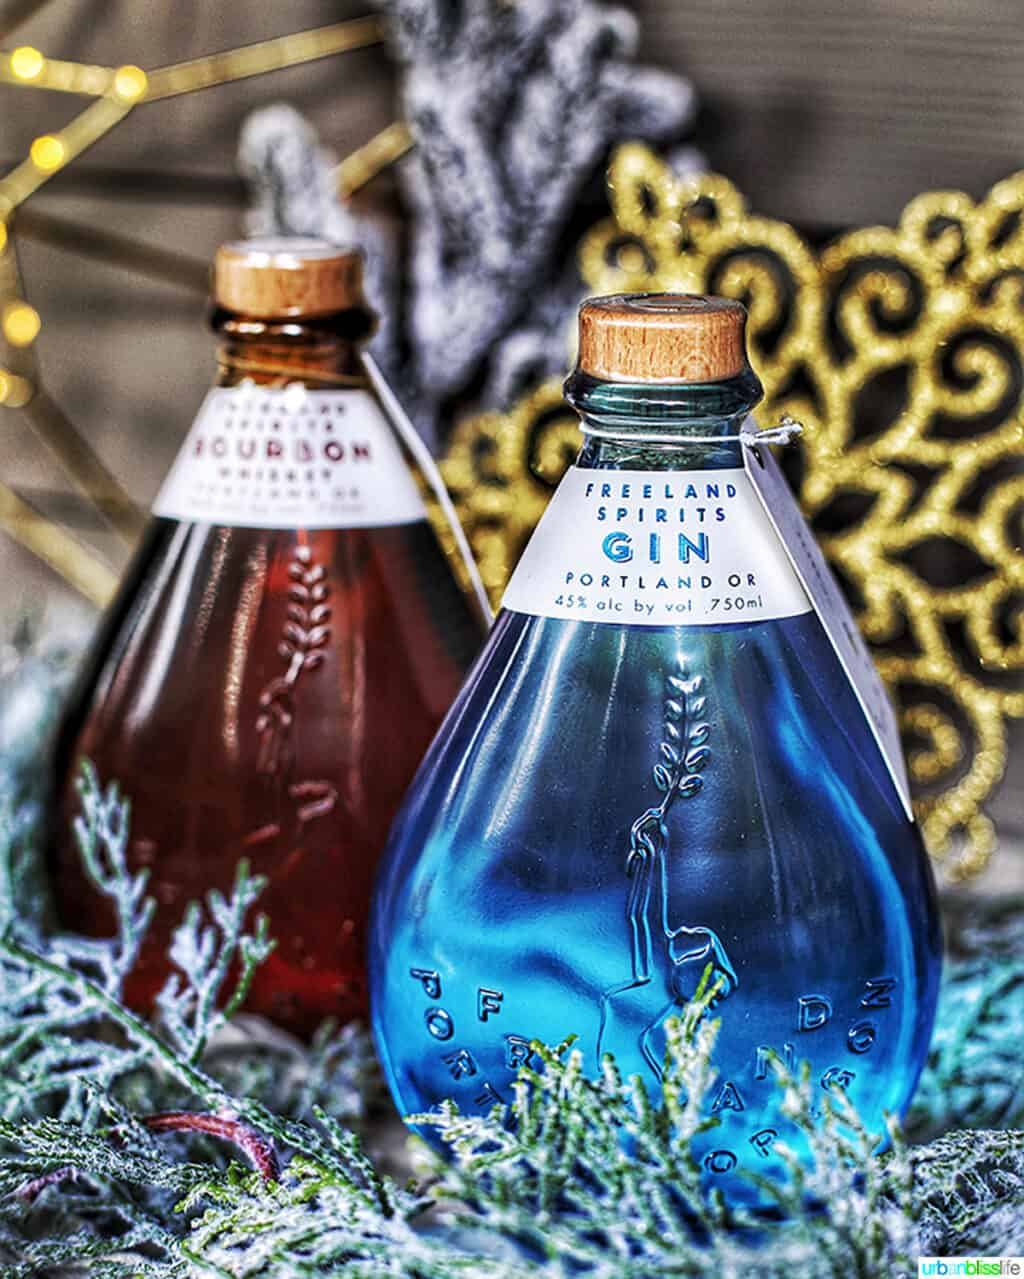 Freeland Bourbon and Gin bottles in holiday setting